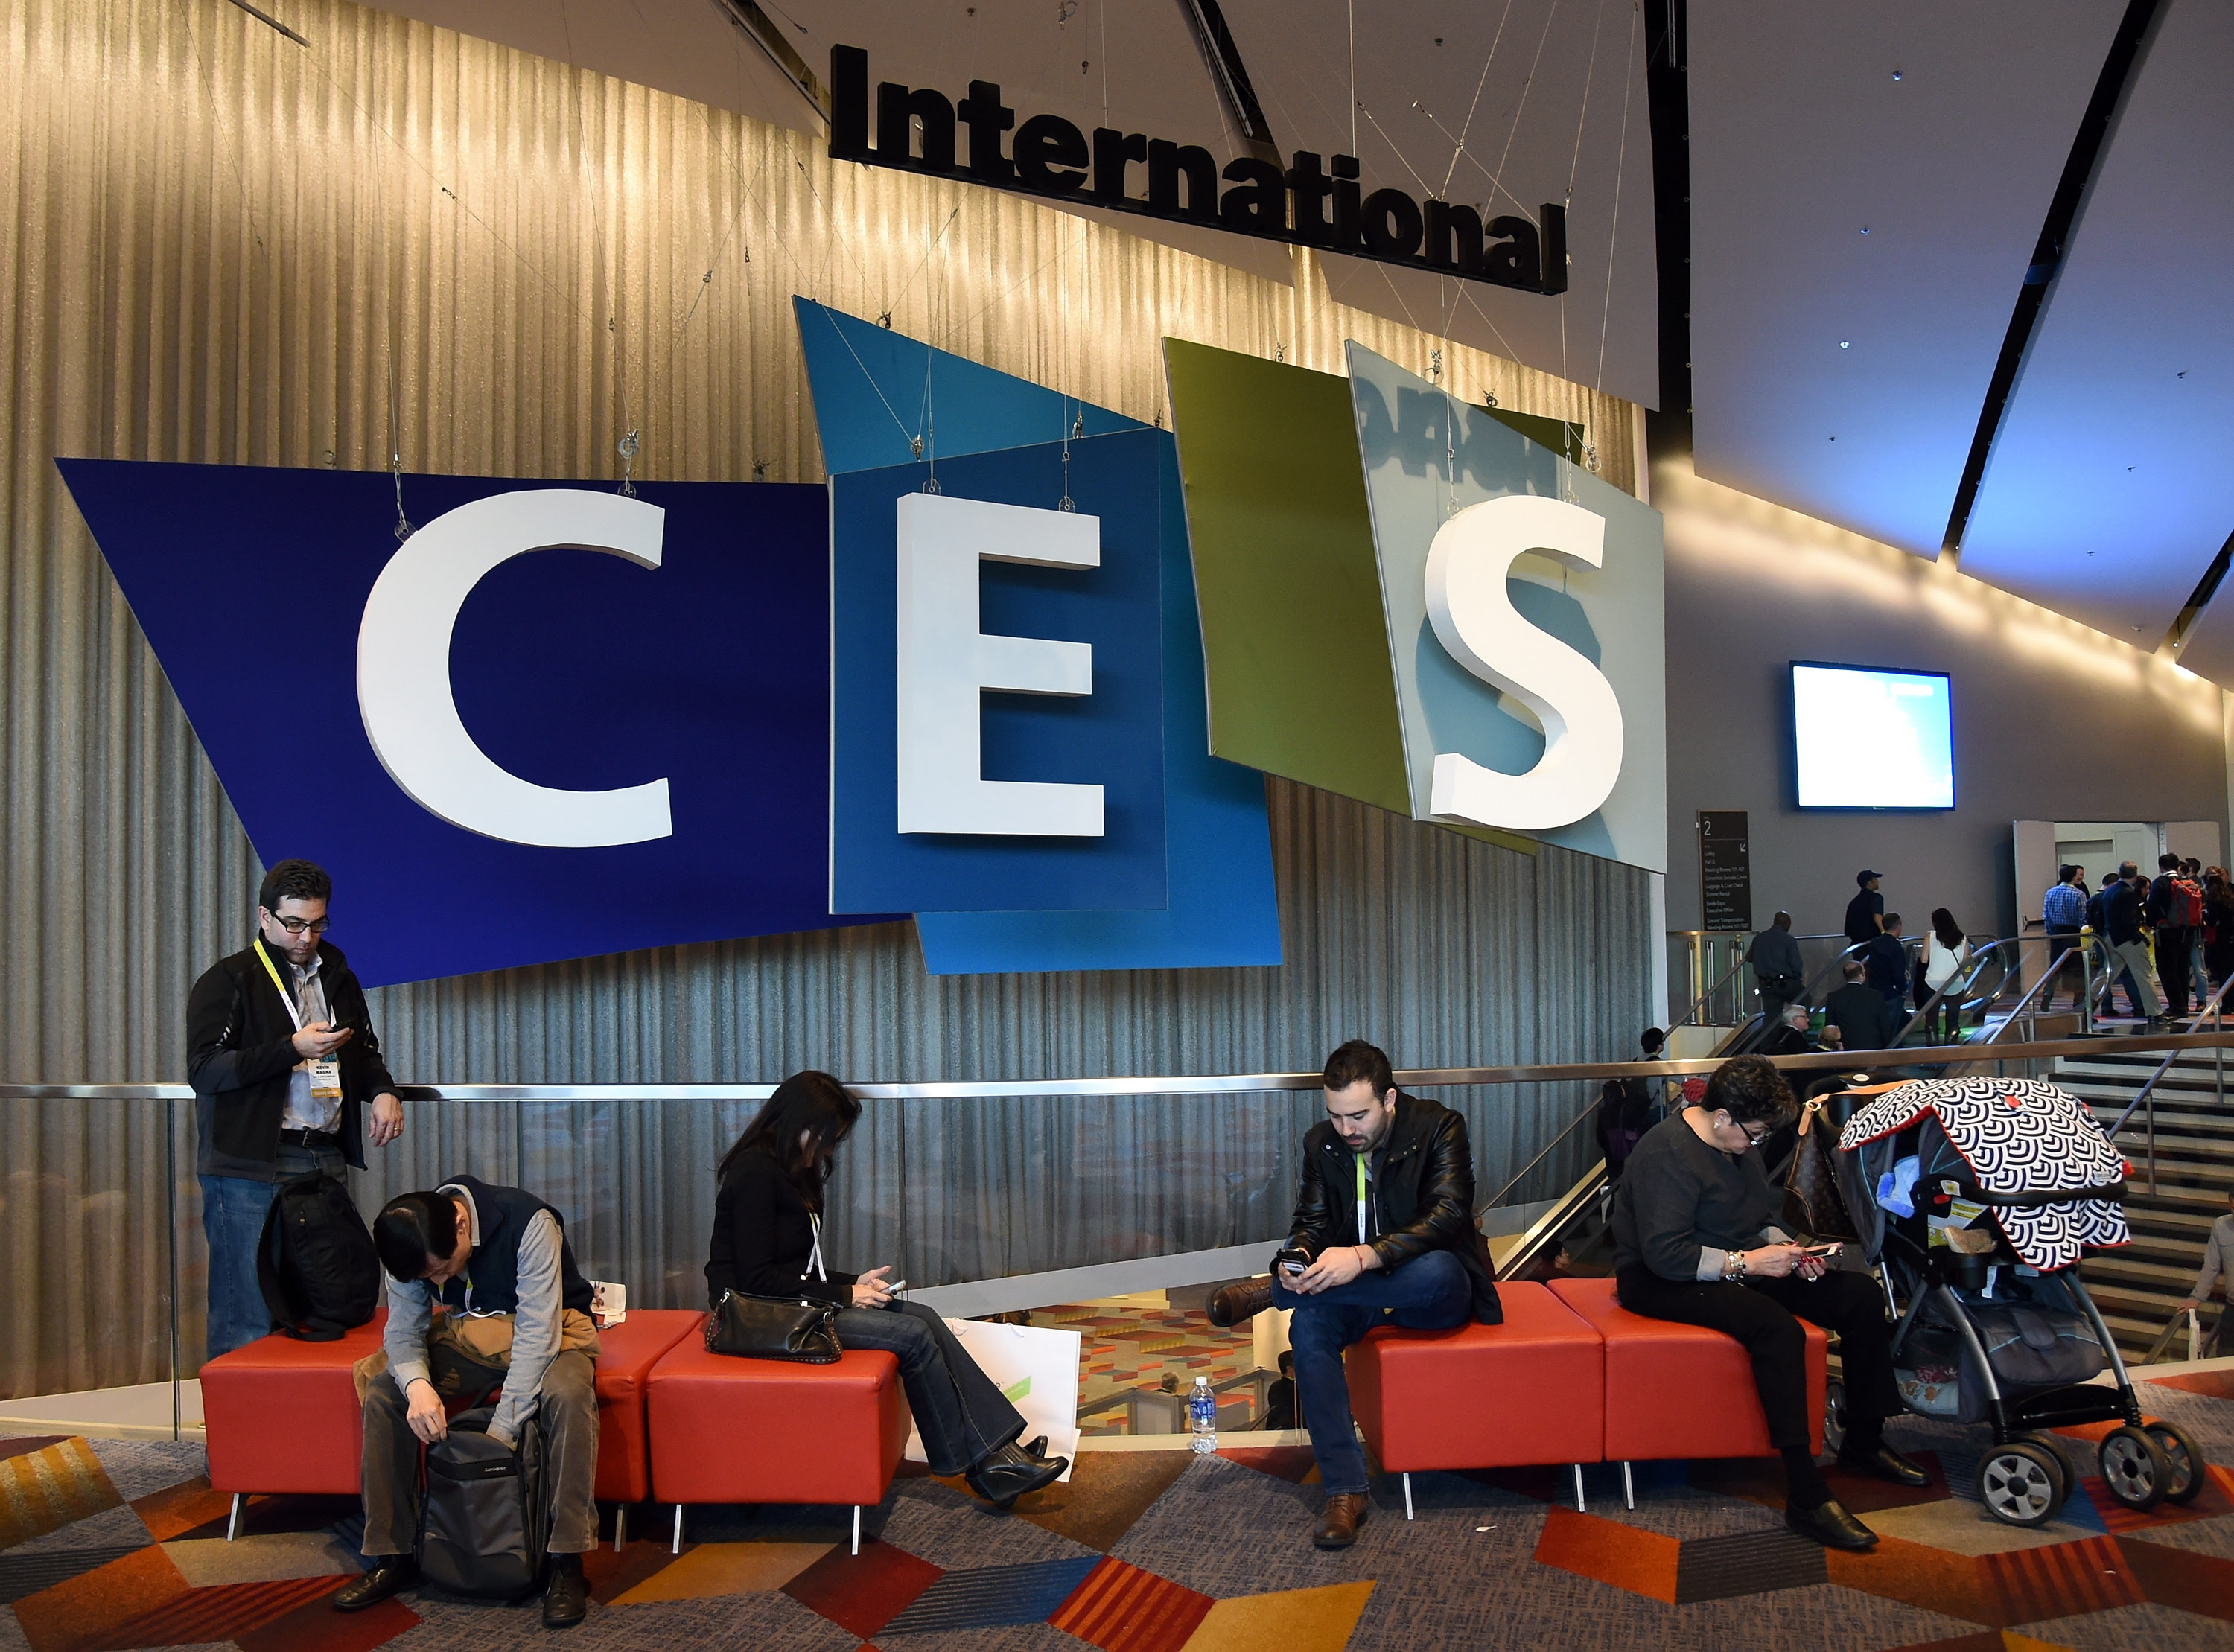 Attendees take a break at the 2015 International CES on Jan. 6, 2015 in Las Vegas, Nevada.